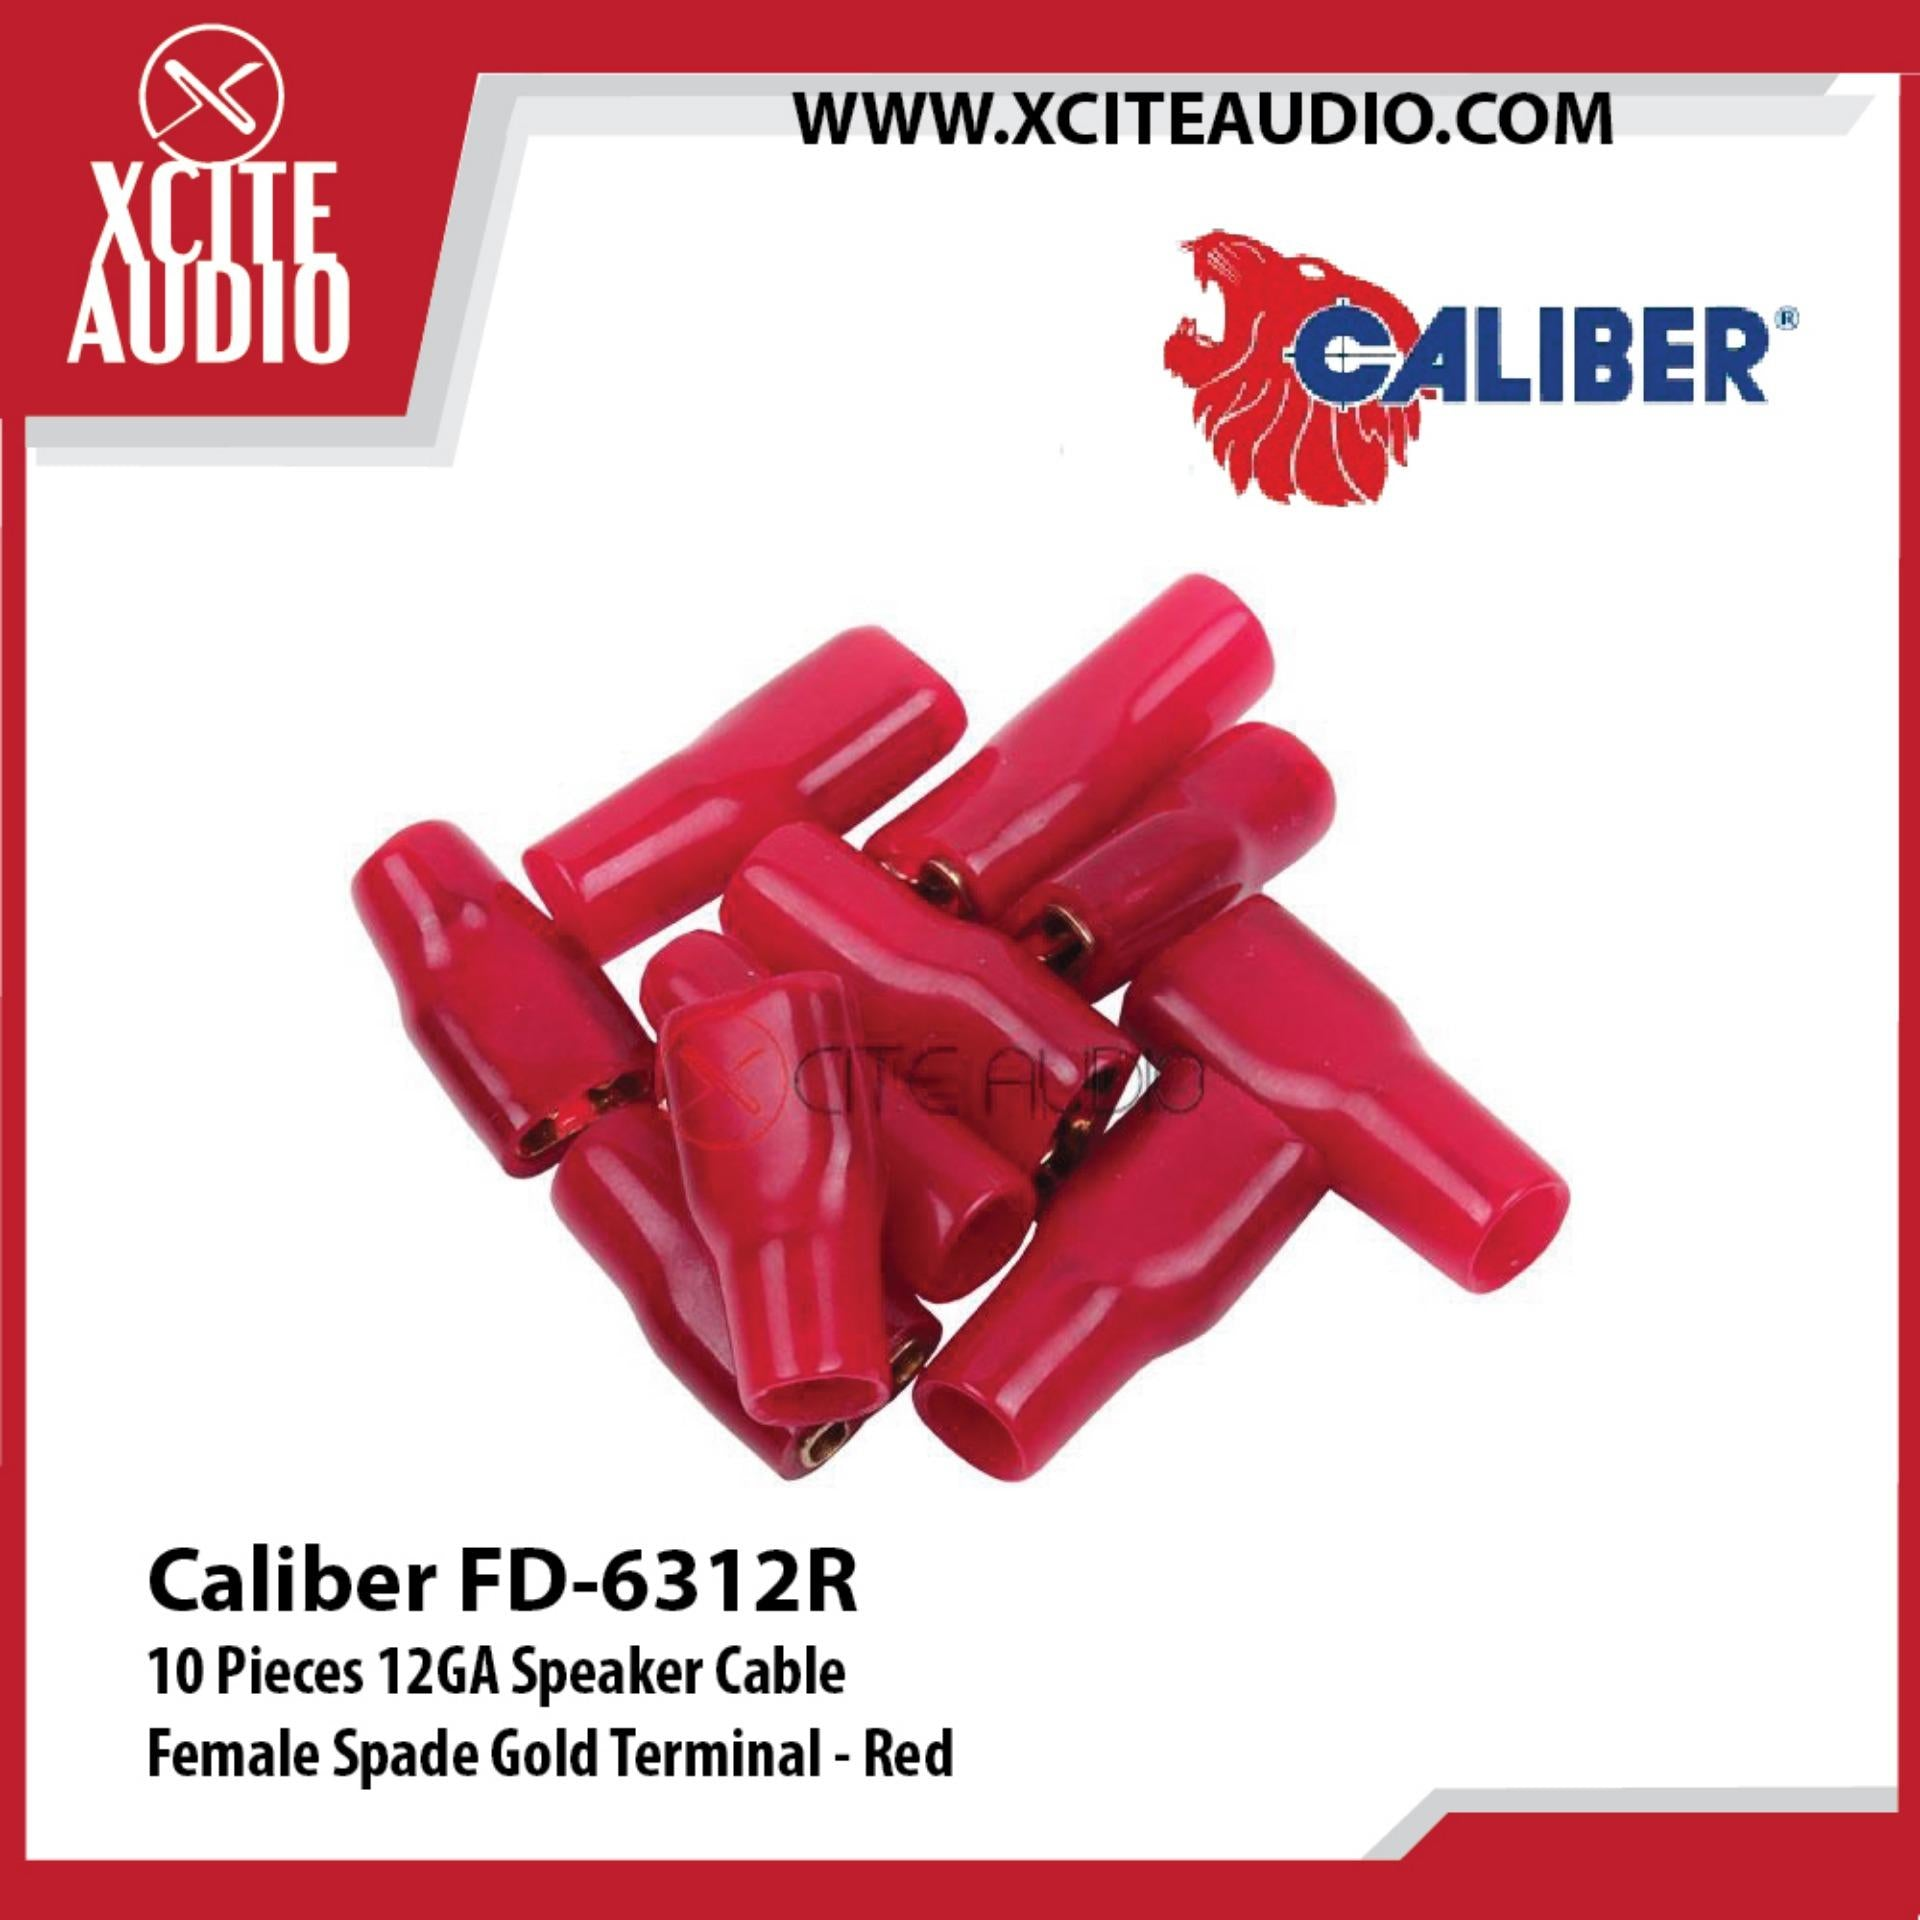 Caliber FD-6312R 10 Pieces 12GA Speaker Cable Female Spade Gold Terminal - Red - Xcite Audio